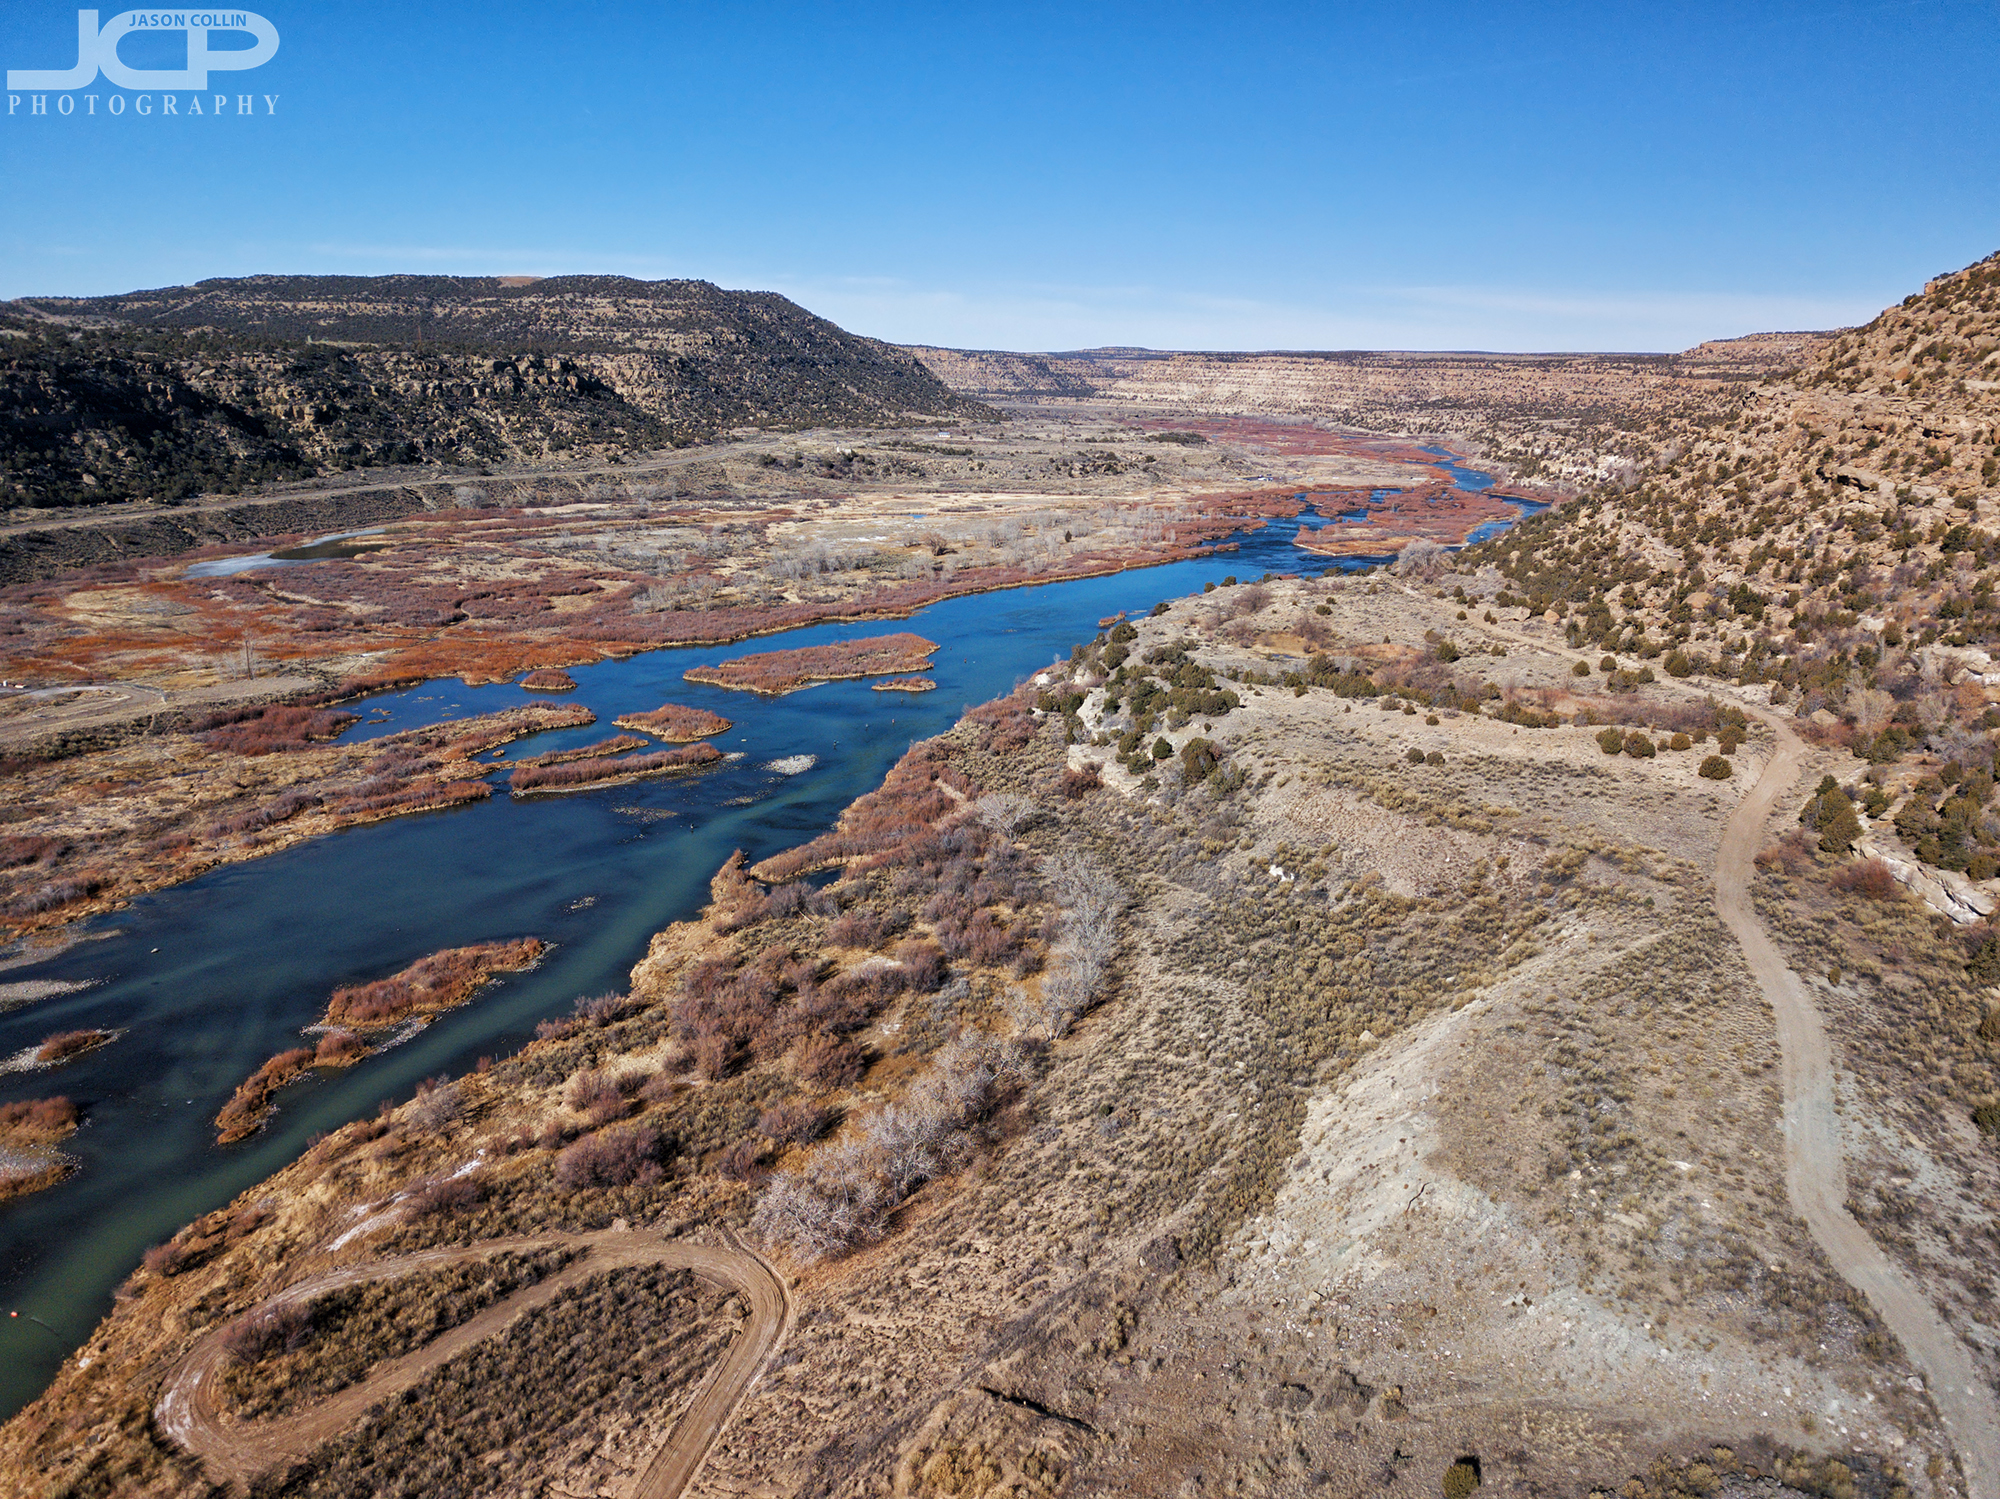 The beautiful San Juan River in New Mexico near the Navajo Dam - DJI Mavic Pro drone image